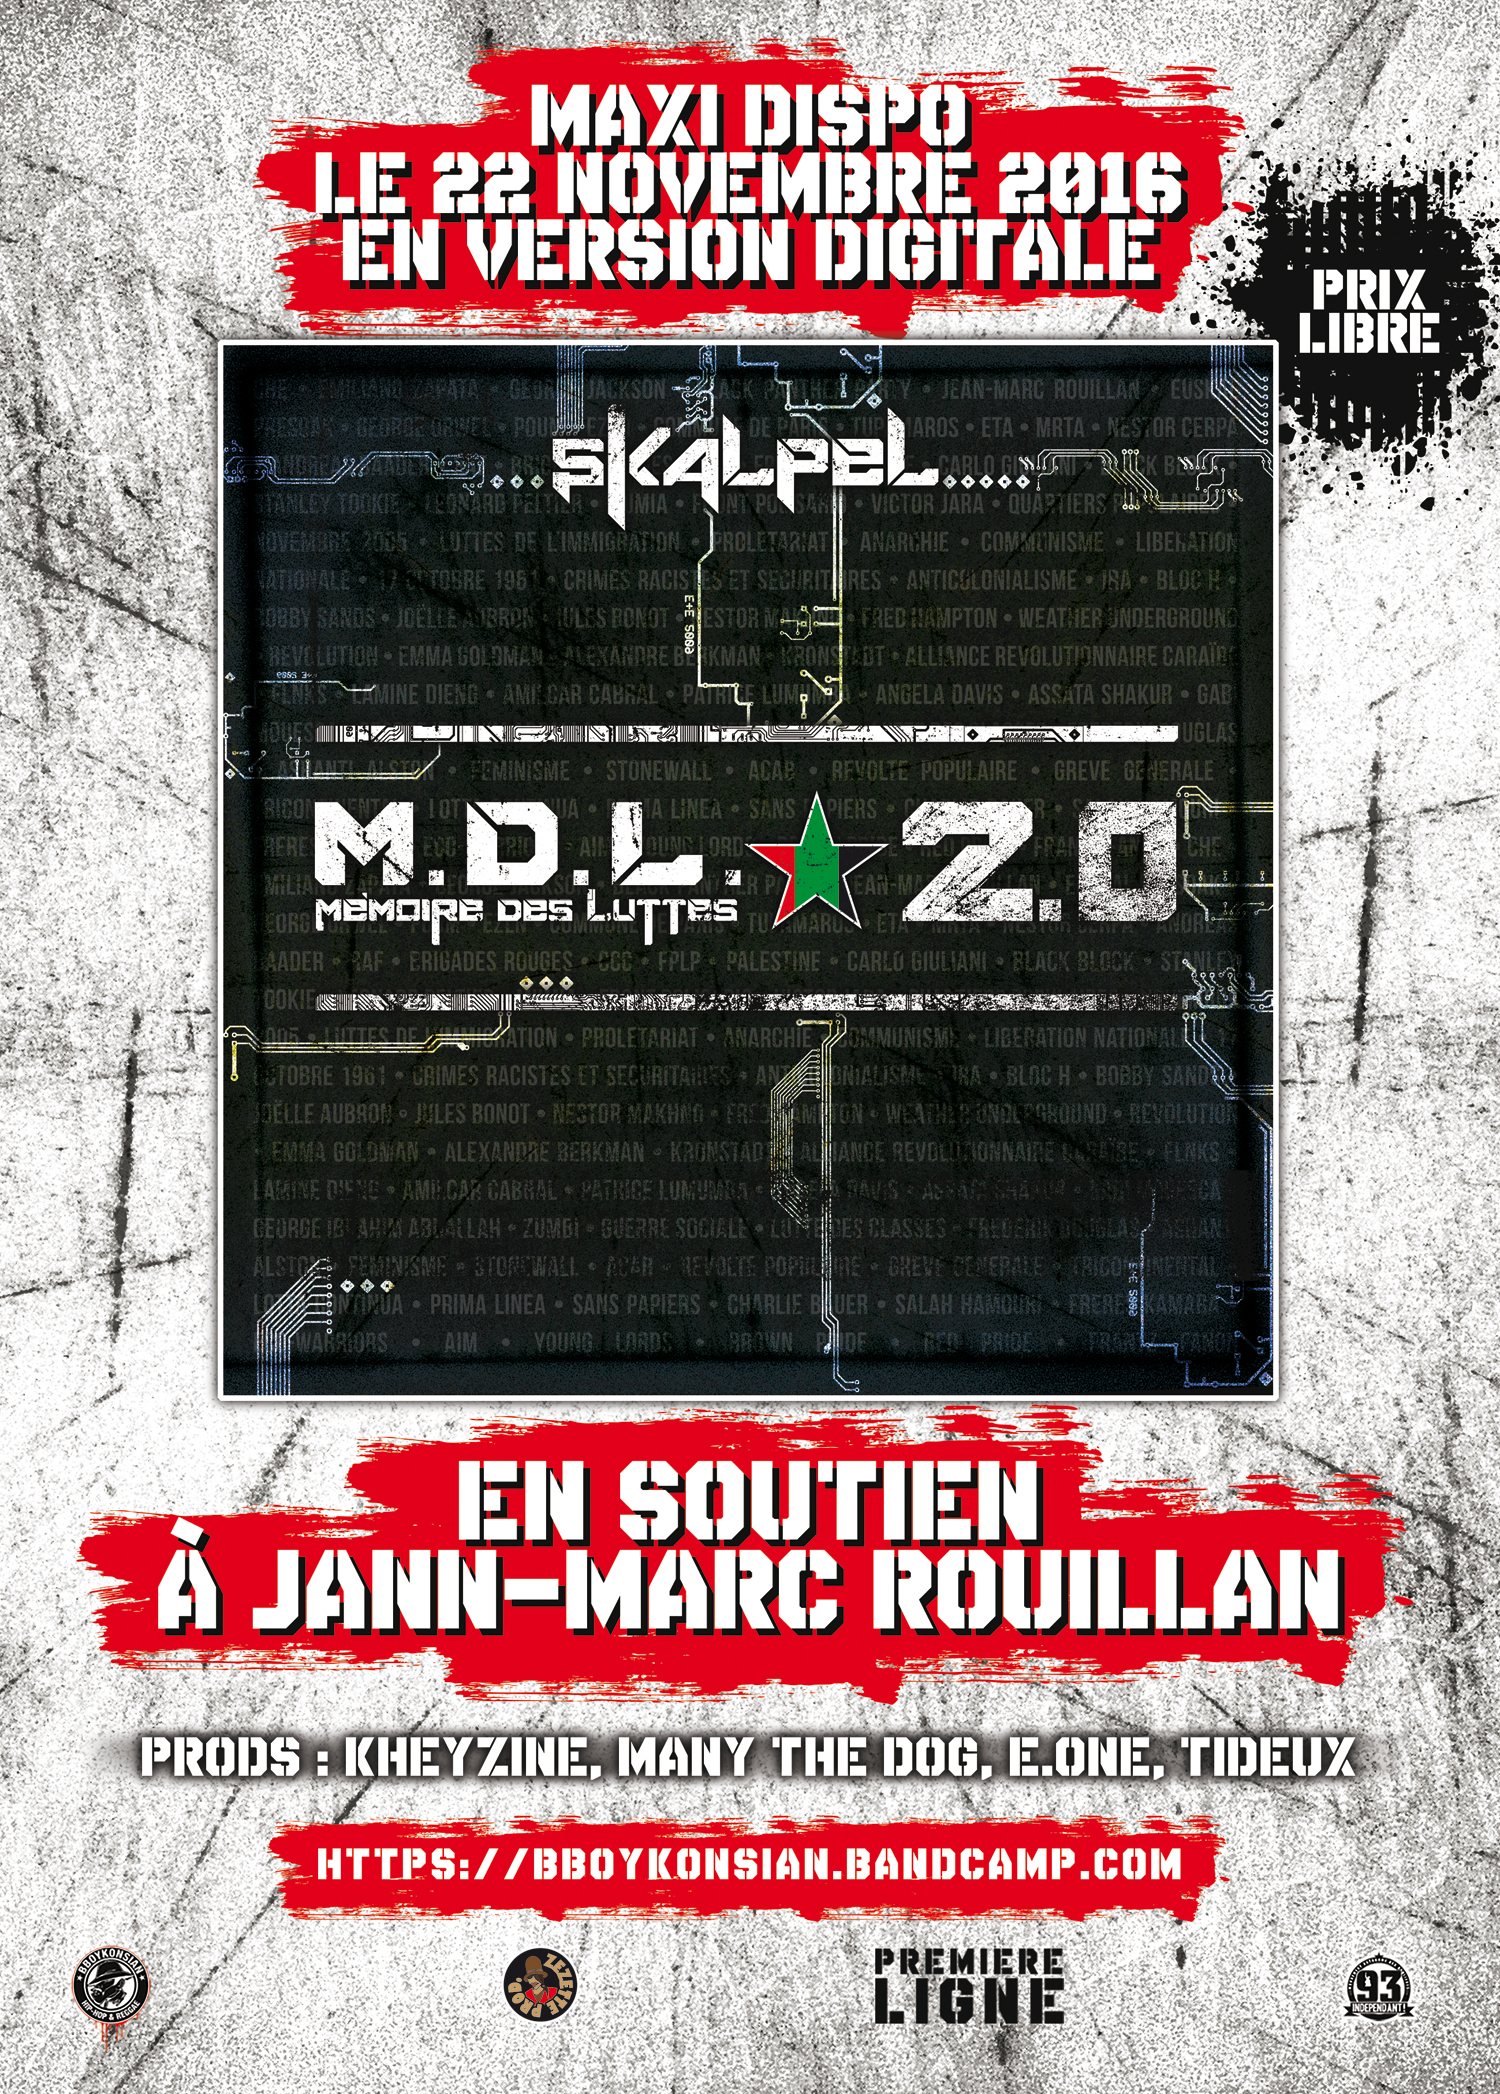 Le maxi 'M.D.L. 2.0' de Skalpel disponible en version digitale